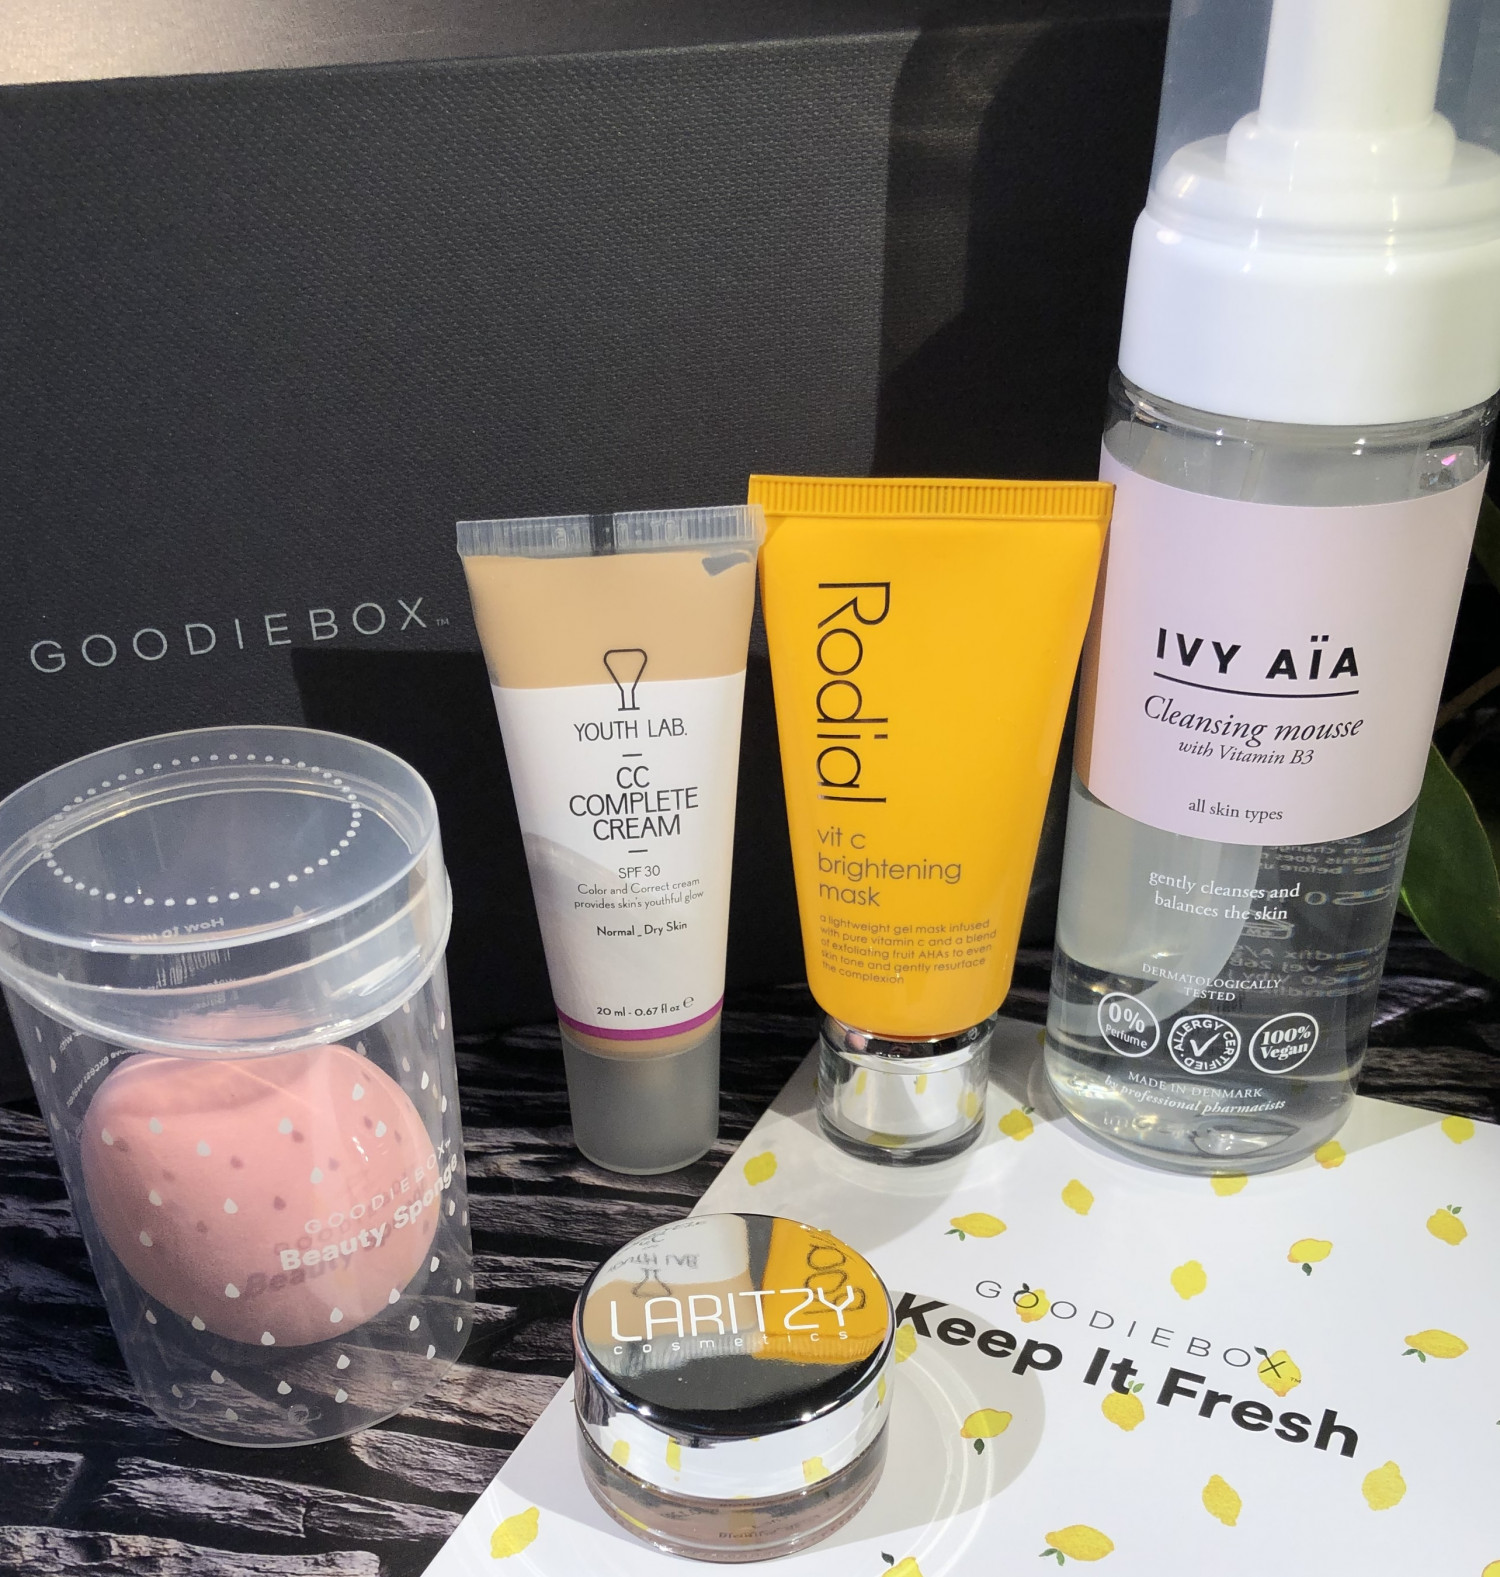 Goodiebox, Goodieboxdk, Goodiebox Danmark, Goodiebox Denmark, Krummes Krumelurer, Krummeskrummelurer, Anmeldelse, Goodiebox Beauty Blender, Youth Lab, CC Complete Cream, Rodial Vit C. Brightening Mask, Ivy Aïa Cleansing Mousse With Vitain B3, Laritzy Cosmetics, Keep It Fresh,